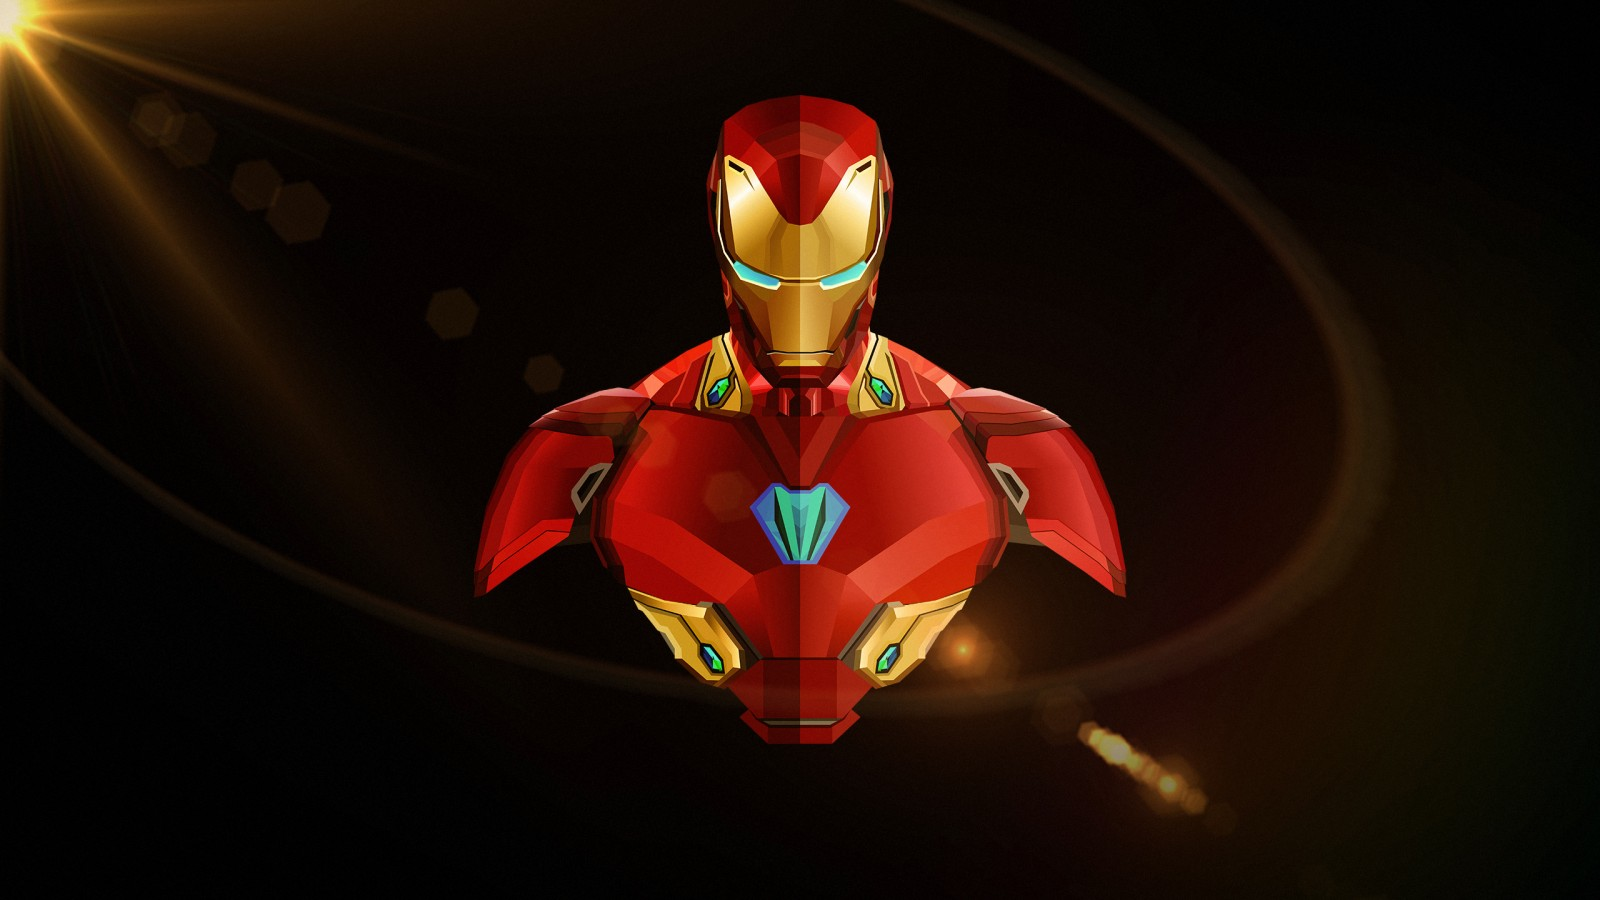 Pure Black Wallpaper Iron Man Avengers Infinity War Minimal Wallpapers Hd